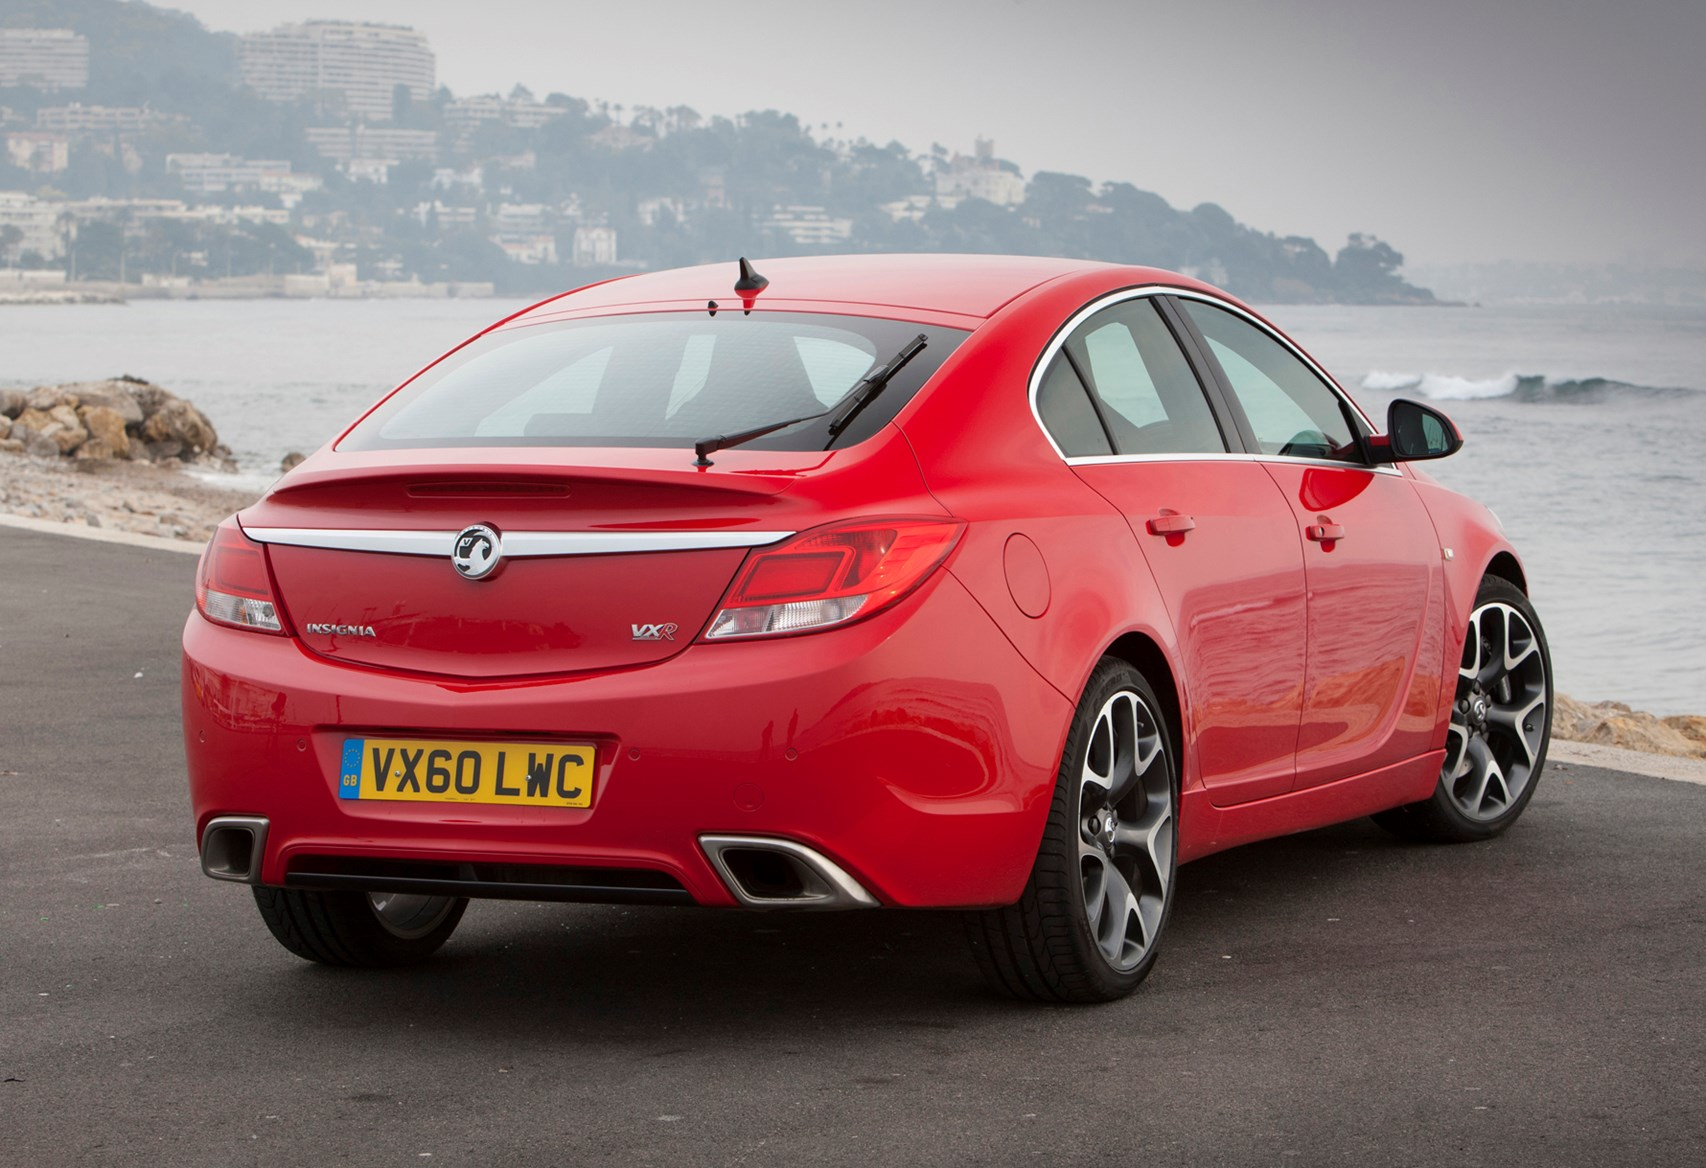 Used Audi A4 For Sale >> Used Vauxhall Insignia VXR (2009 - 2017) Review   Parkers